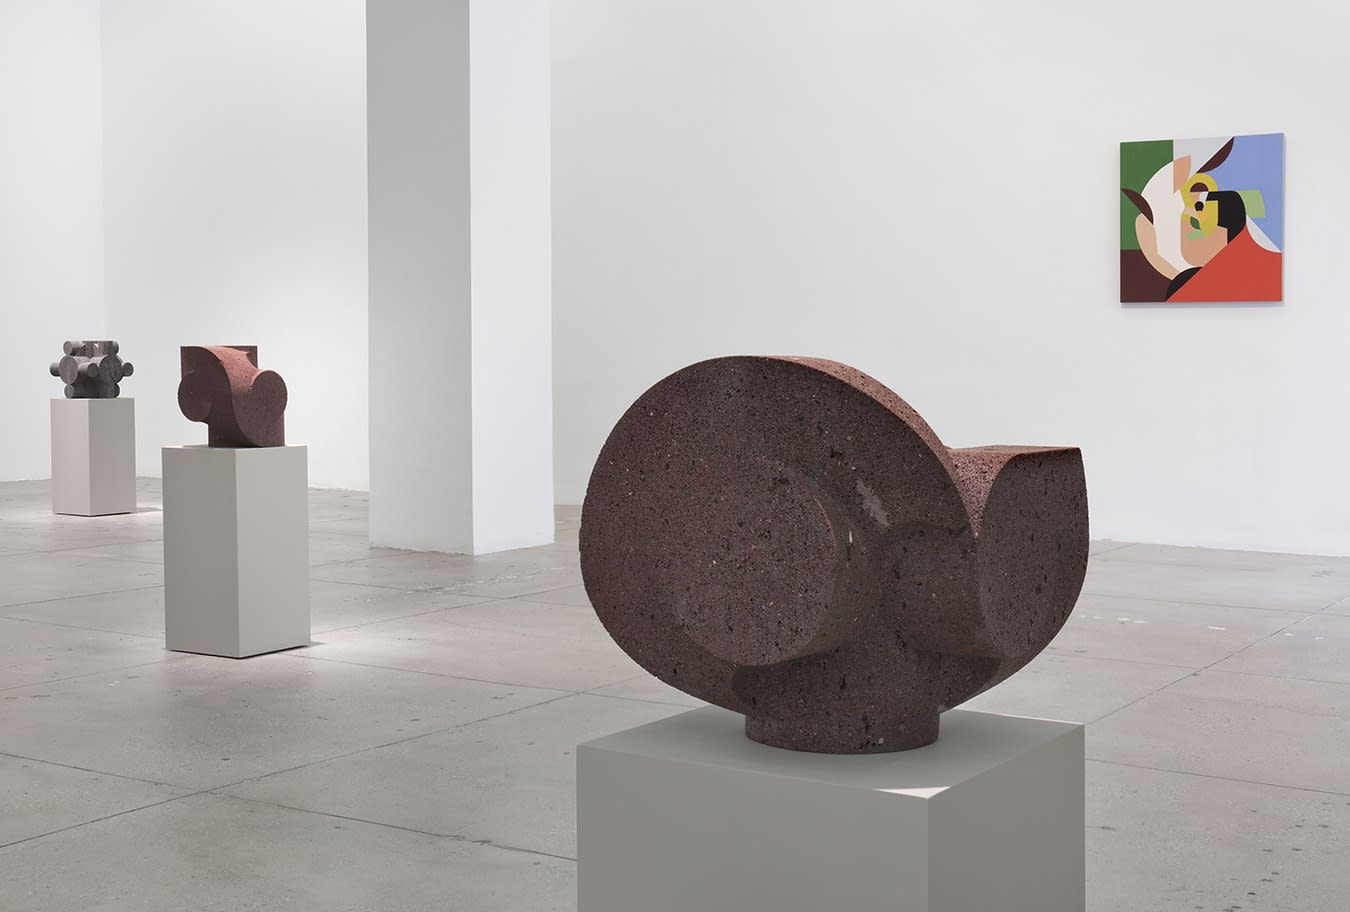 In a large white space, a small abstract painting hangs to the right of 3 small, dark stone sculptures.